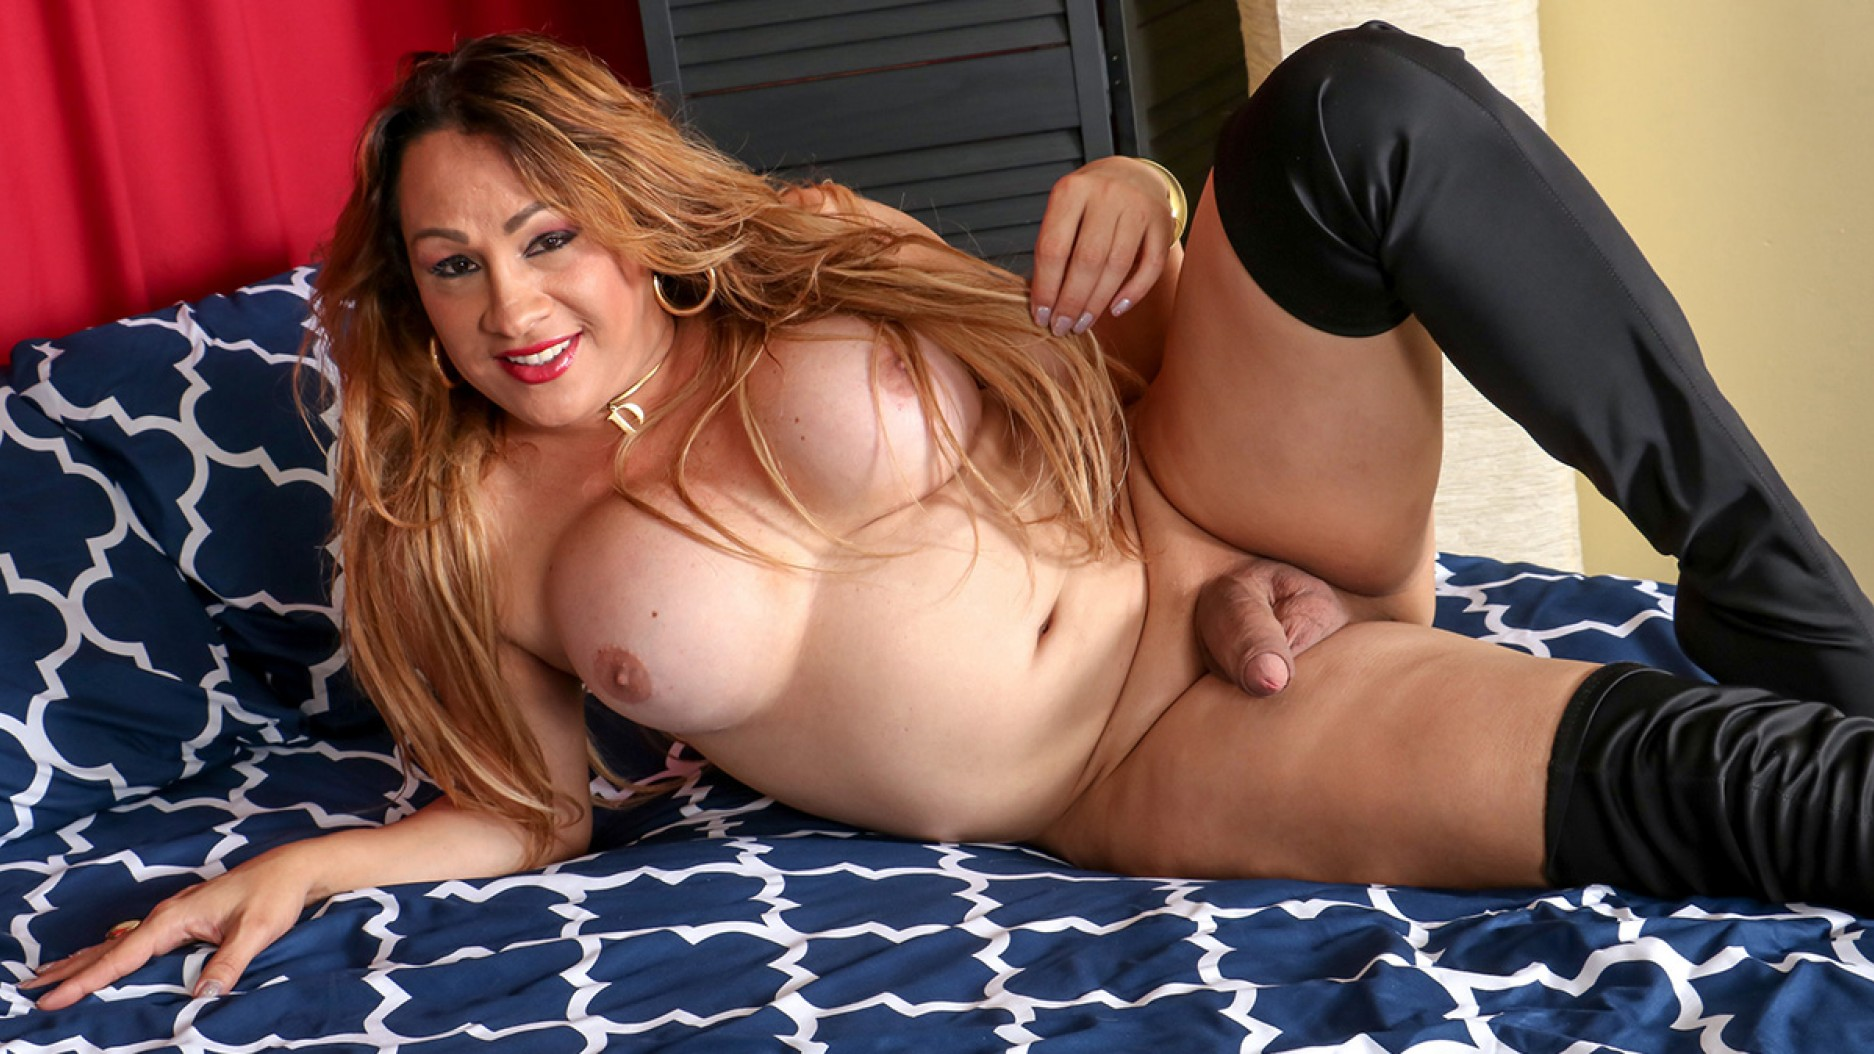 TGirl40 Lovely Dayana Hot In Black!  Shemale XXX WEB-DL Groobynetwork Siterip RIP